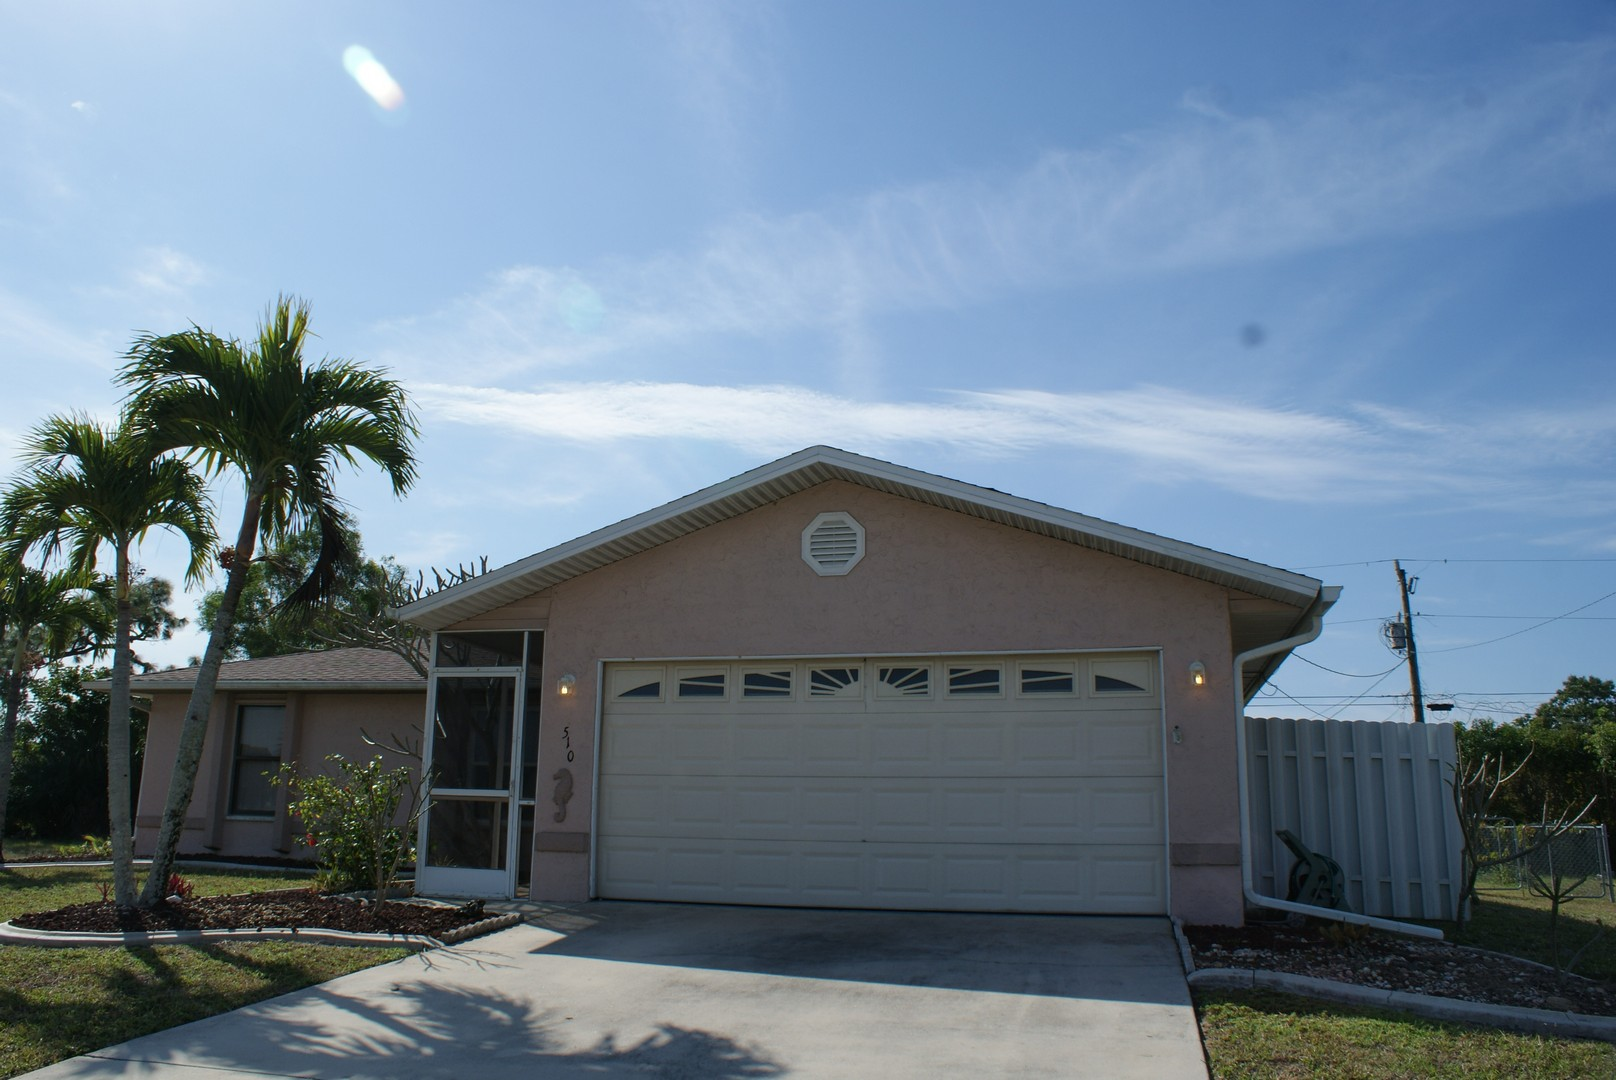 Swfl Real Estate Services Llc Swfl Real Estate Services Llc